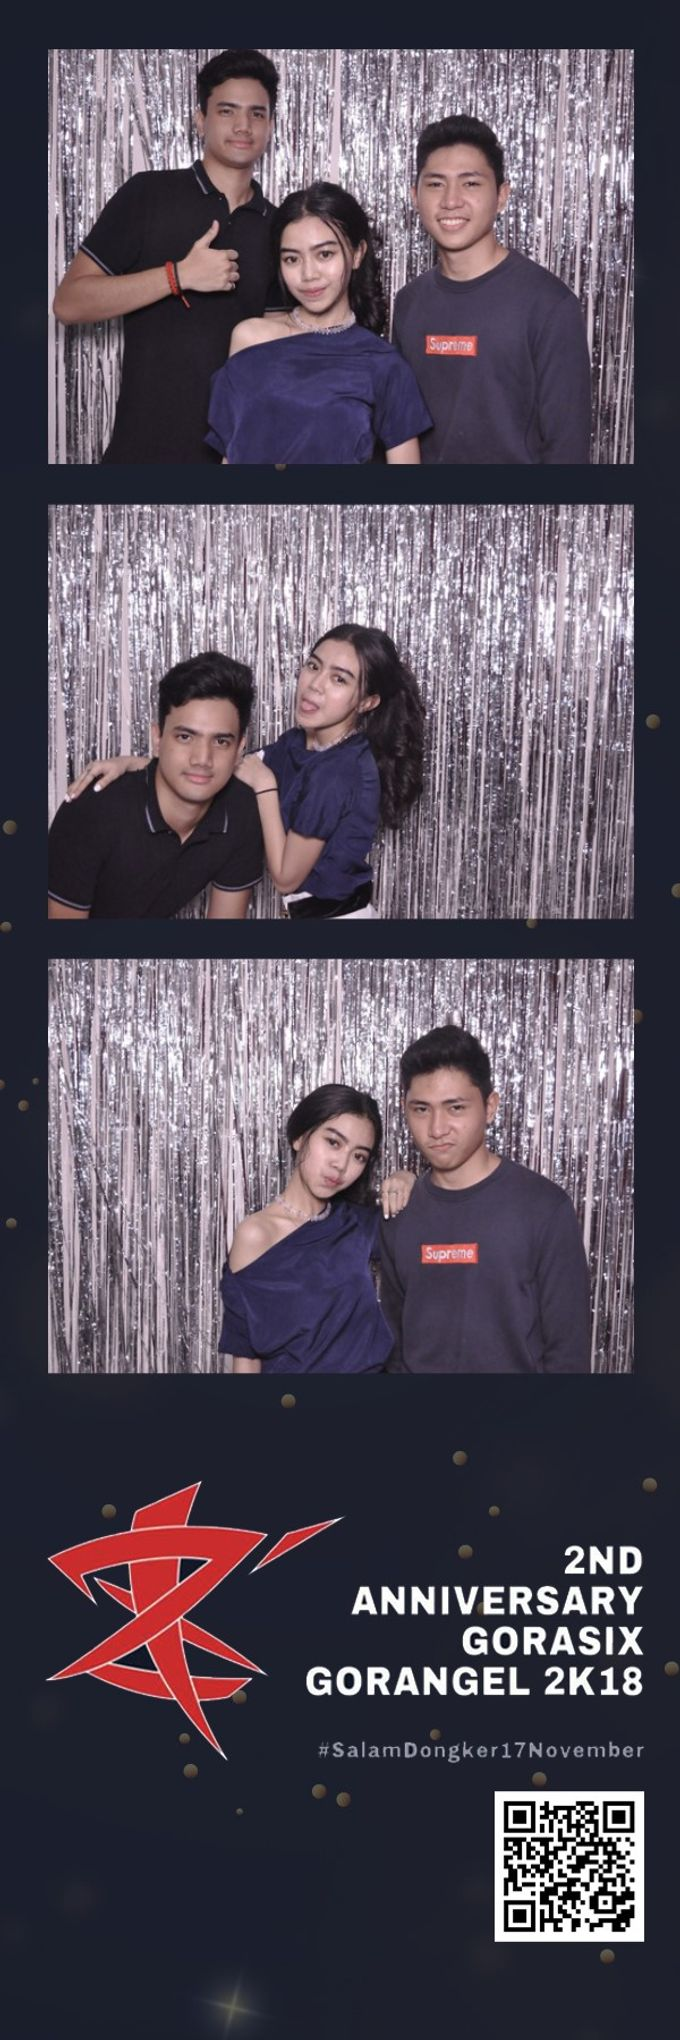 SRIPE PHOTOBOOTH by Picto Booth - 002